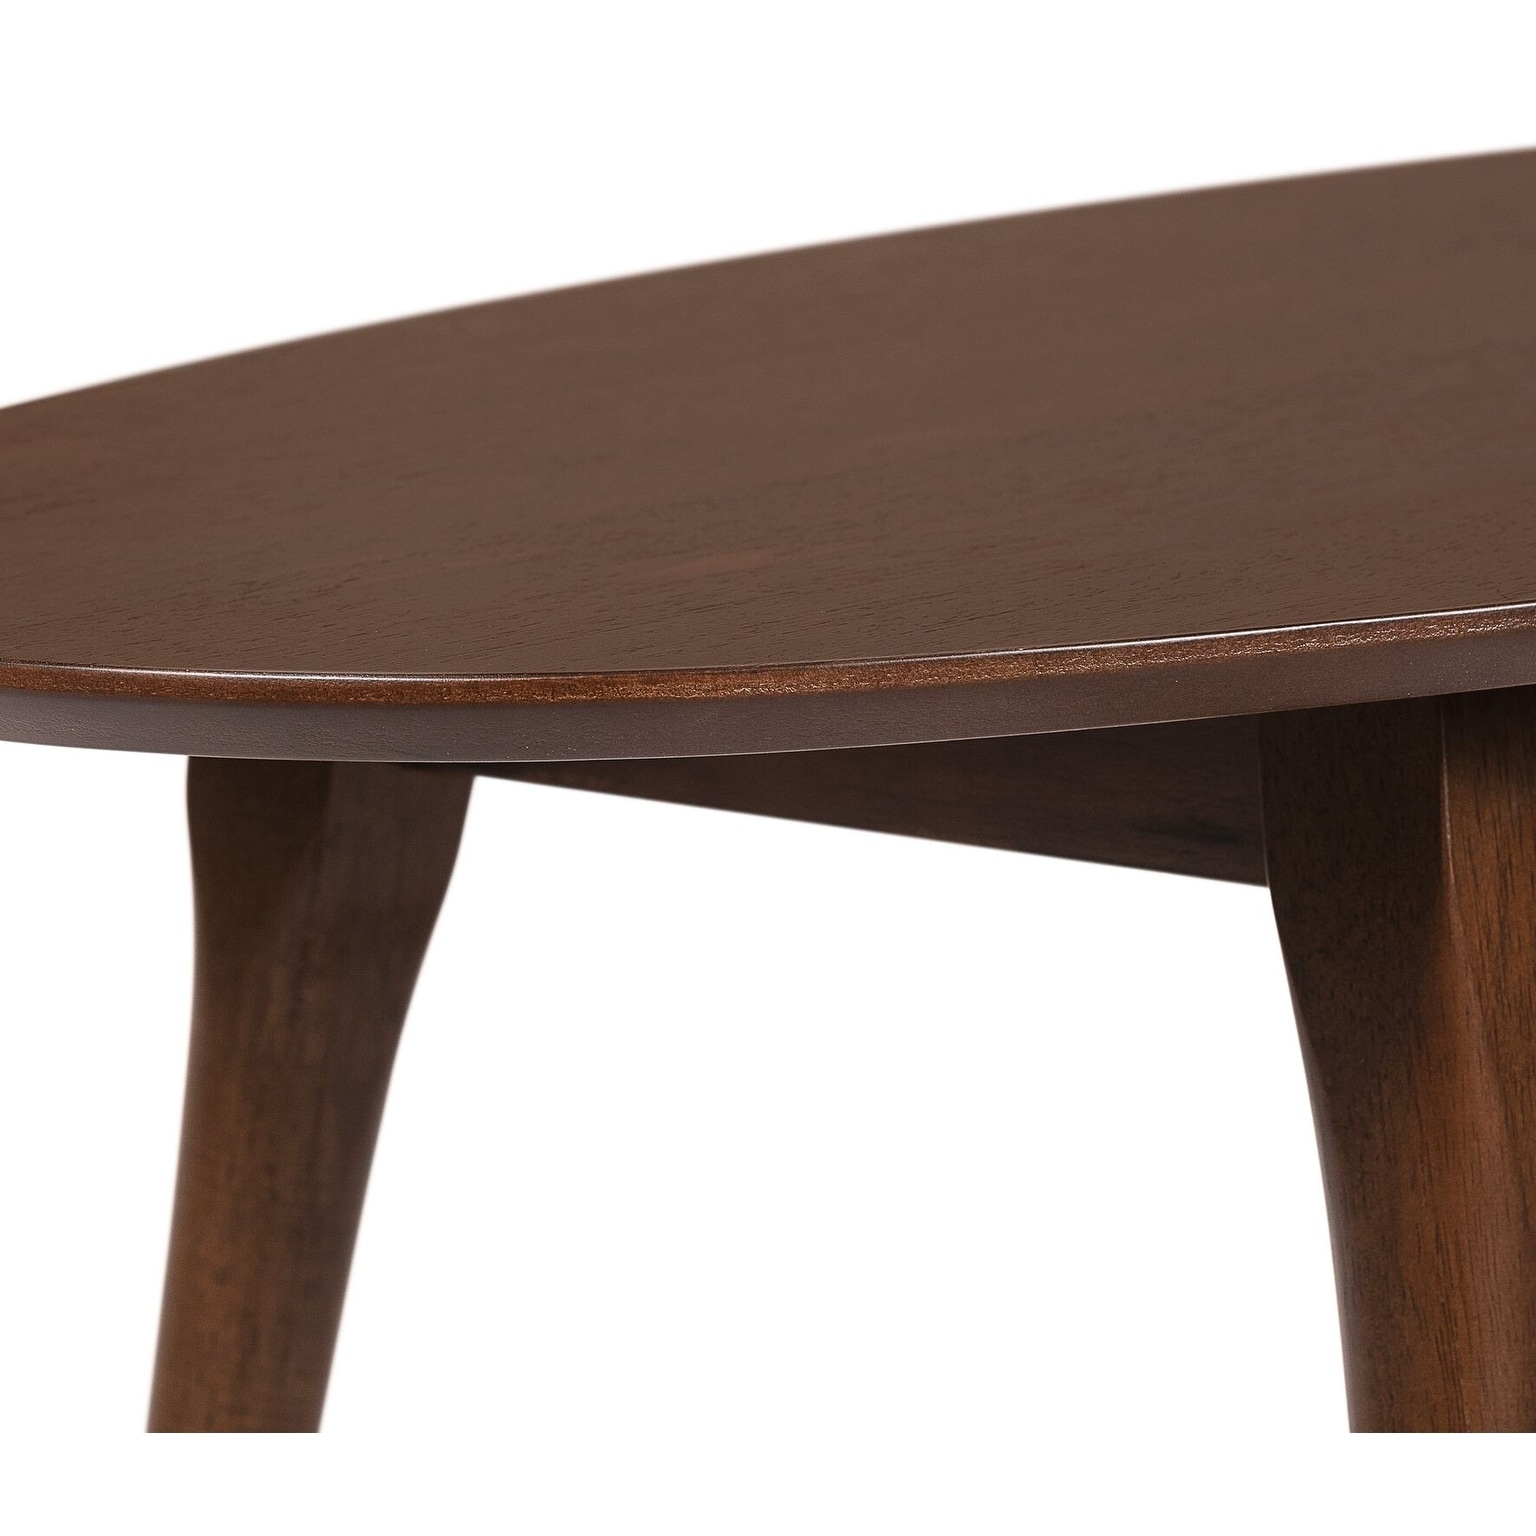 Elle Decor Clemintine Mid Century Oval Coffee Table With Br Accents Free Shipping Today 25559708